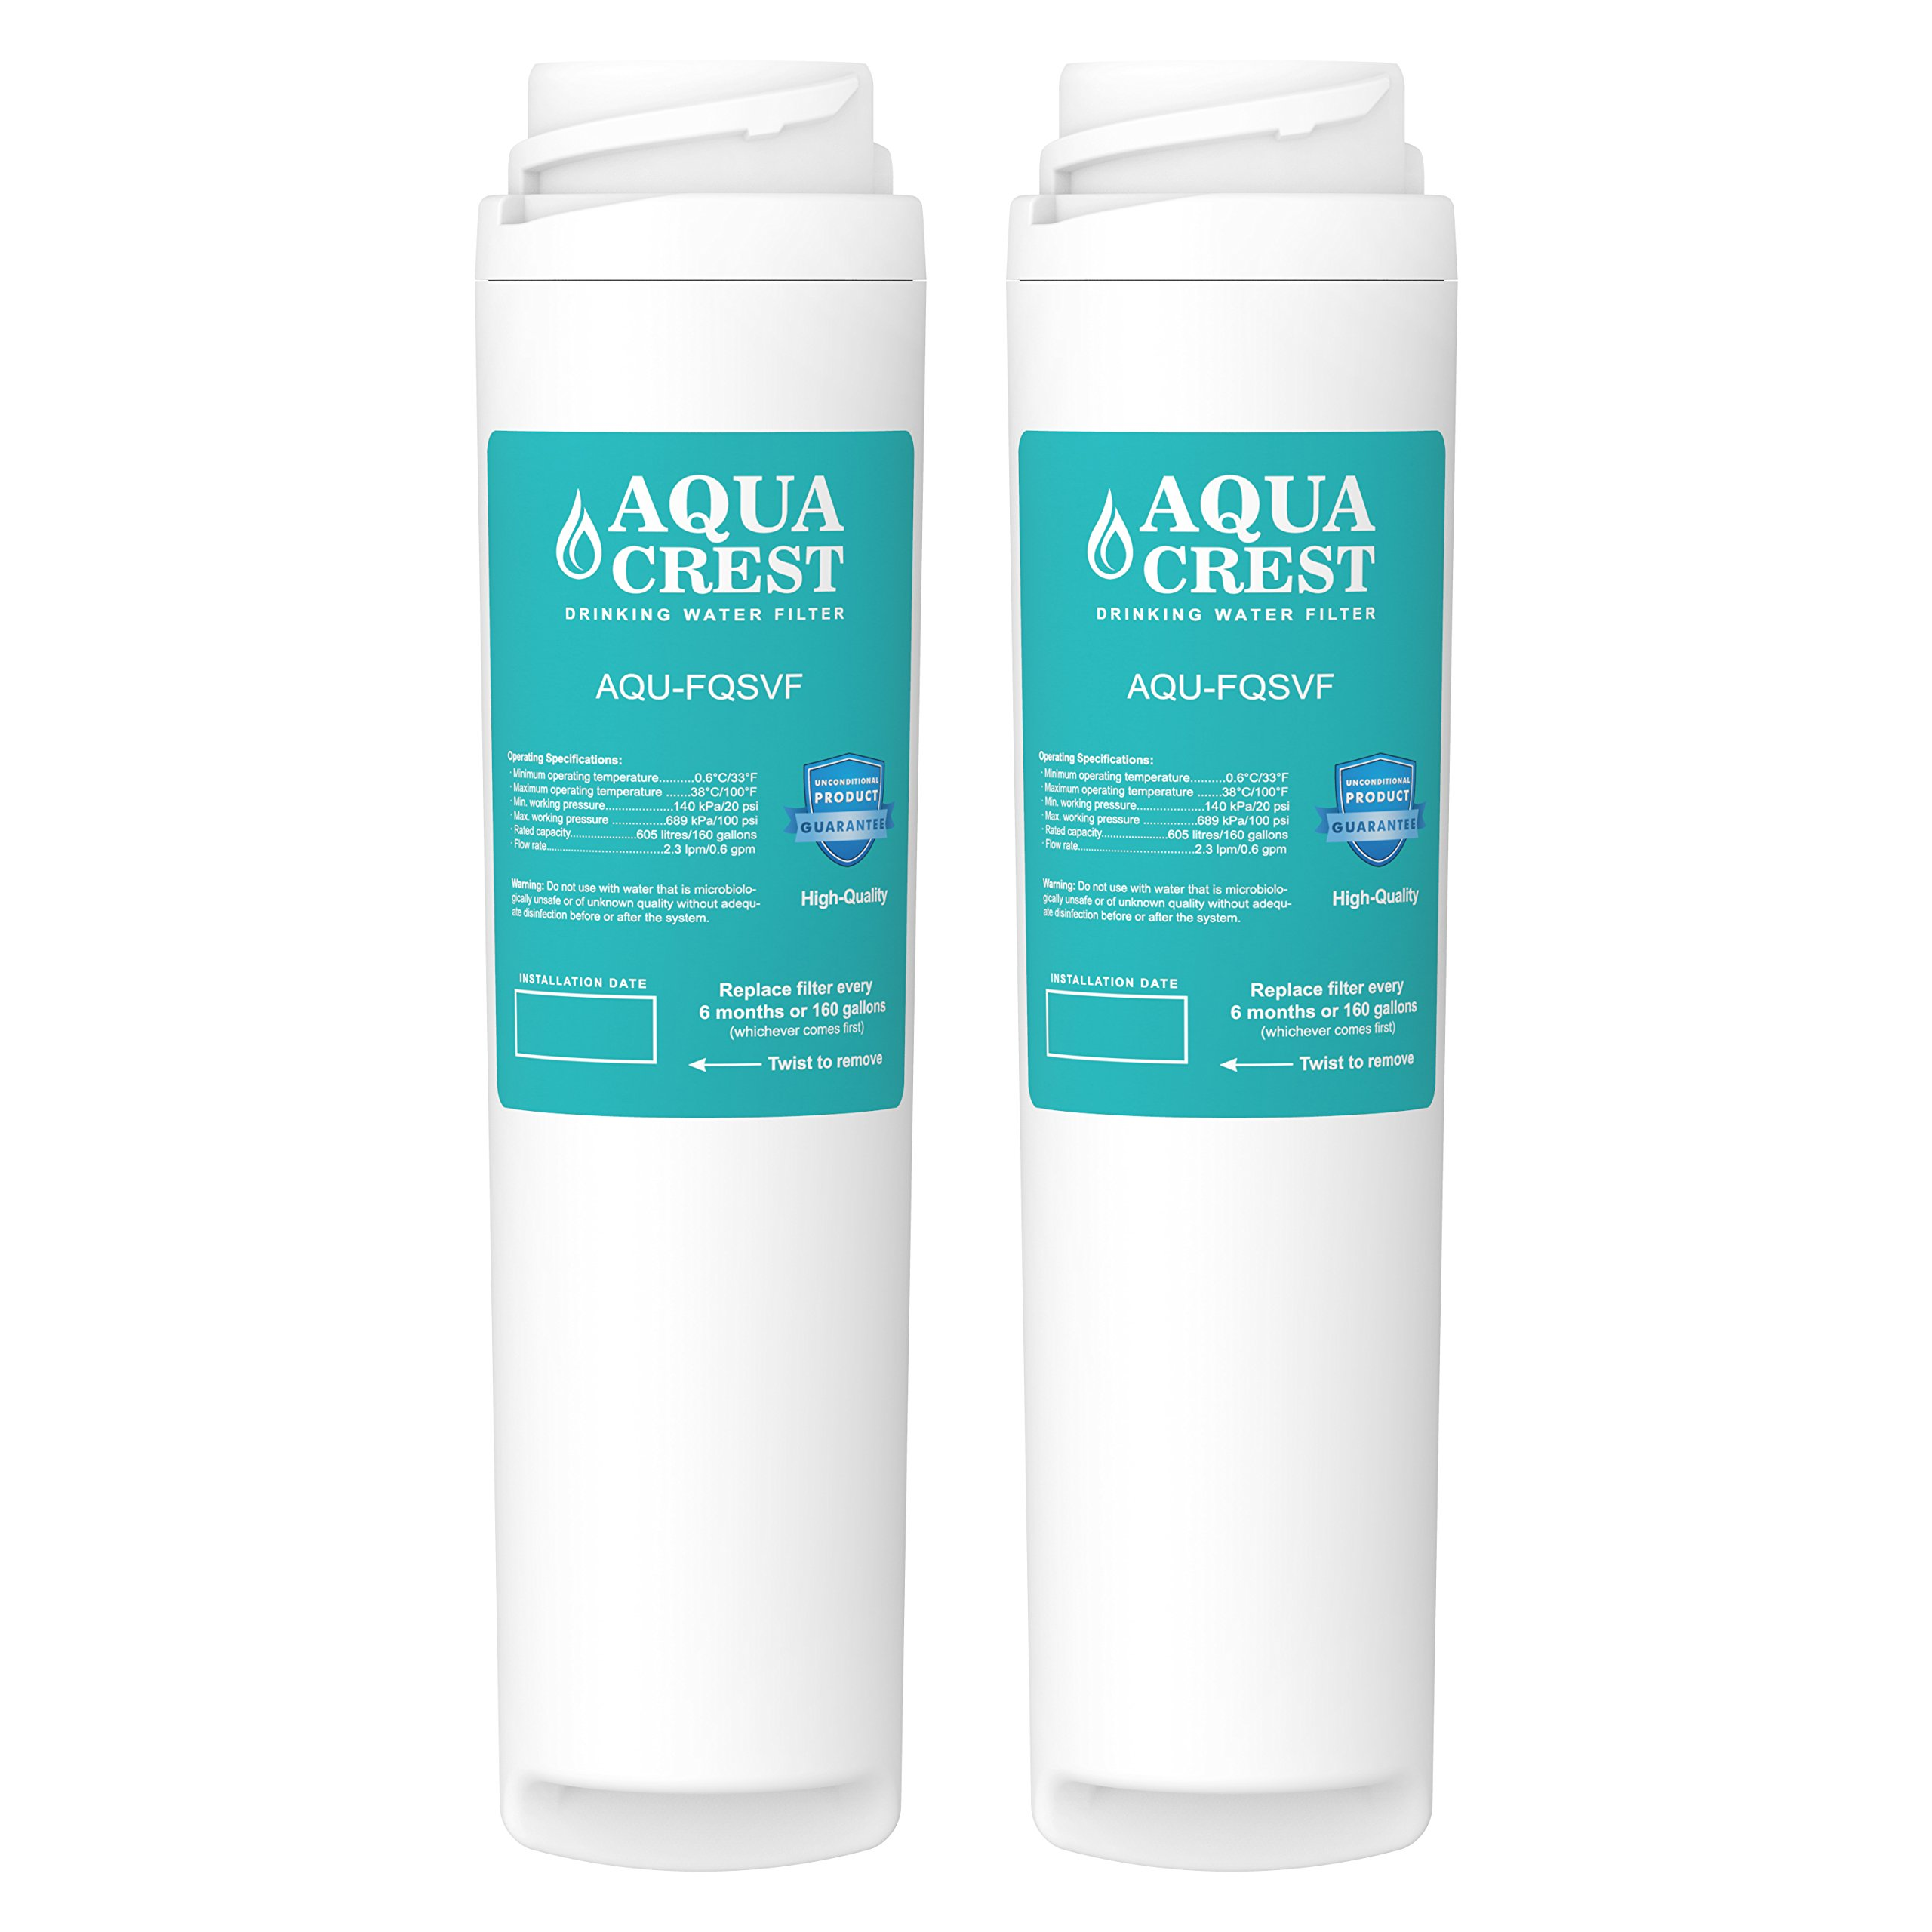 AQUACREST FQSVF Replacement Under Sink Water Filter, Compatible with GE FQSVF, GXSV65R (1 Set)